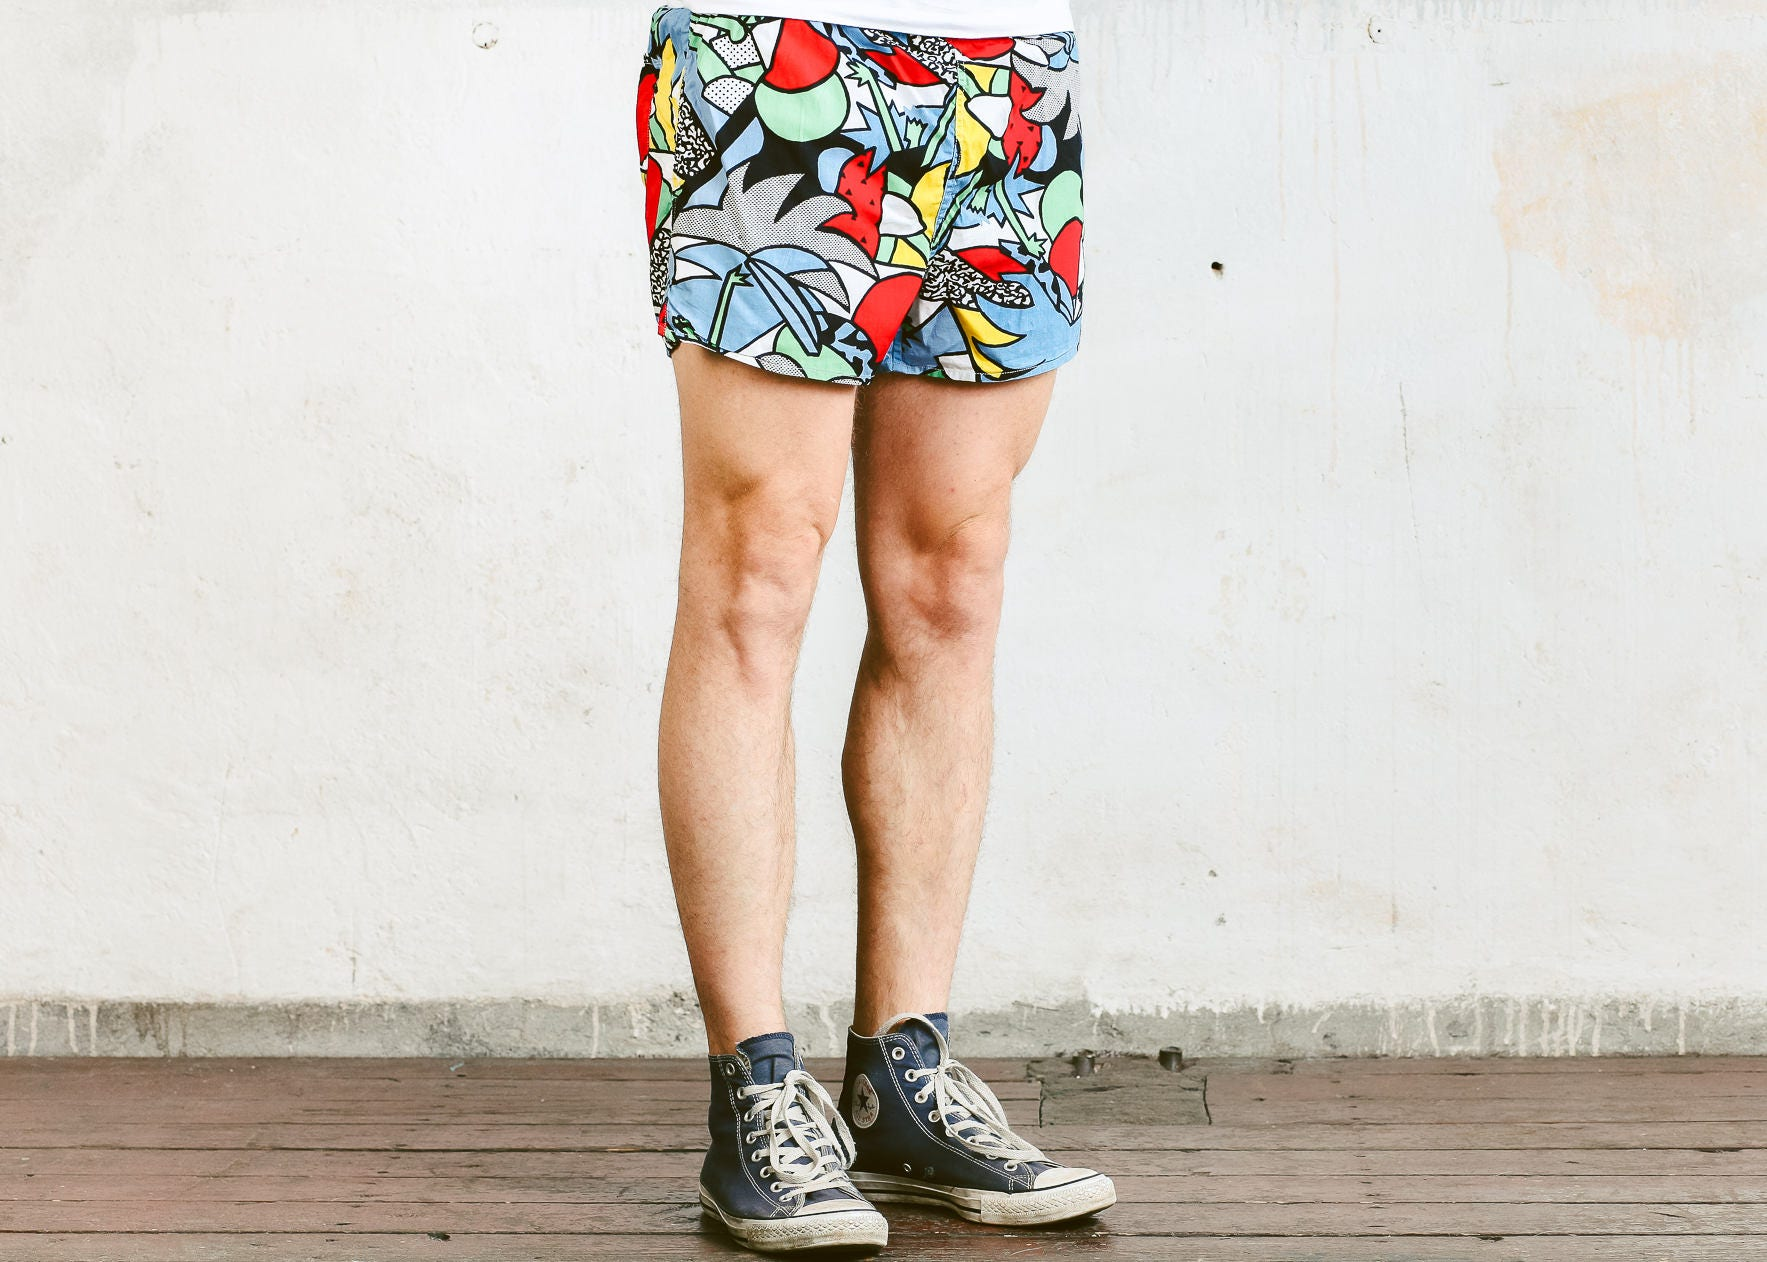 dbed60f798 Mens Swim Shorts . Vintage 90s Printed Beach Shorts Swim Trunks ...